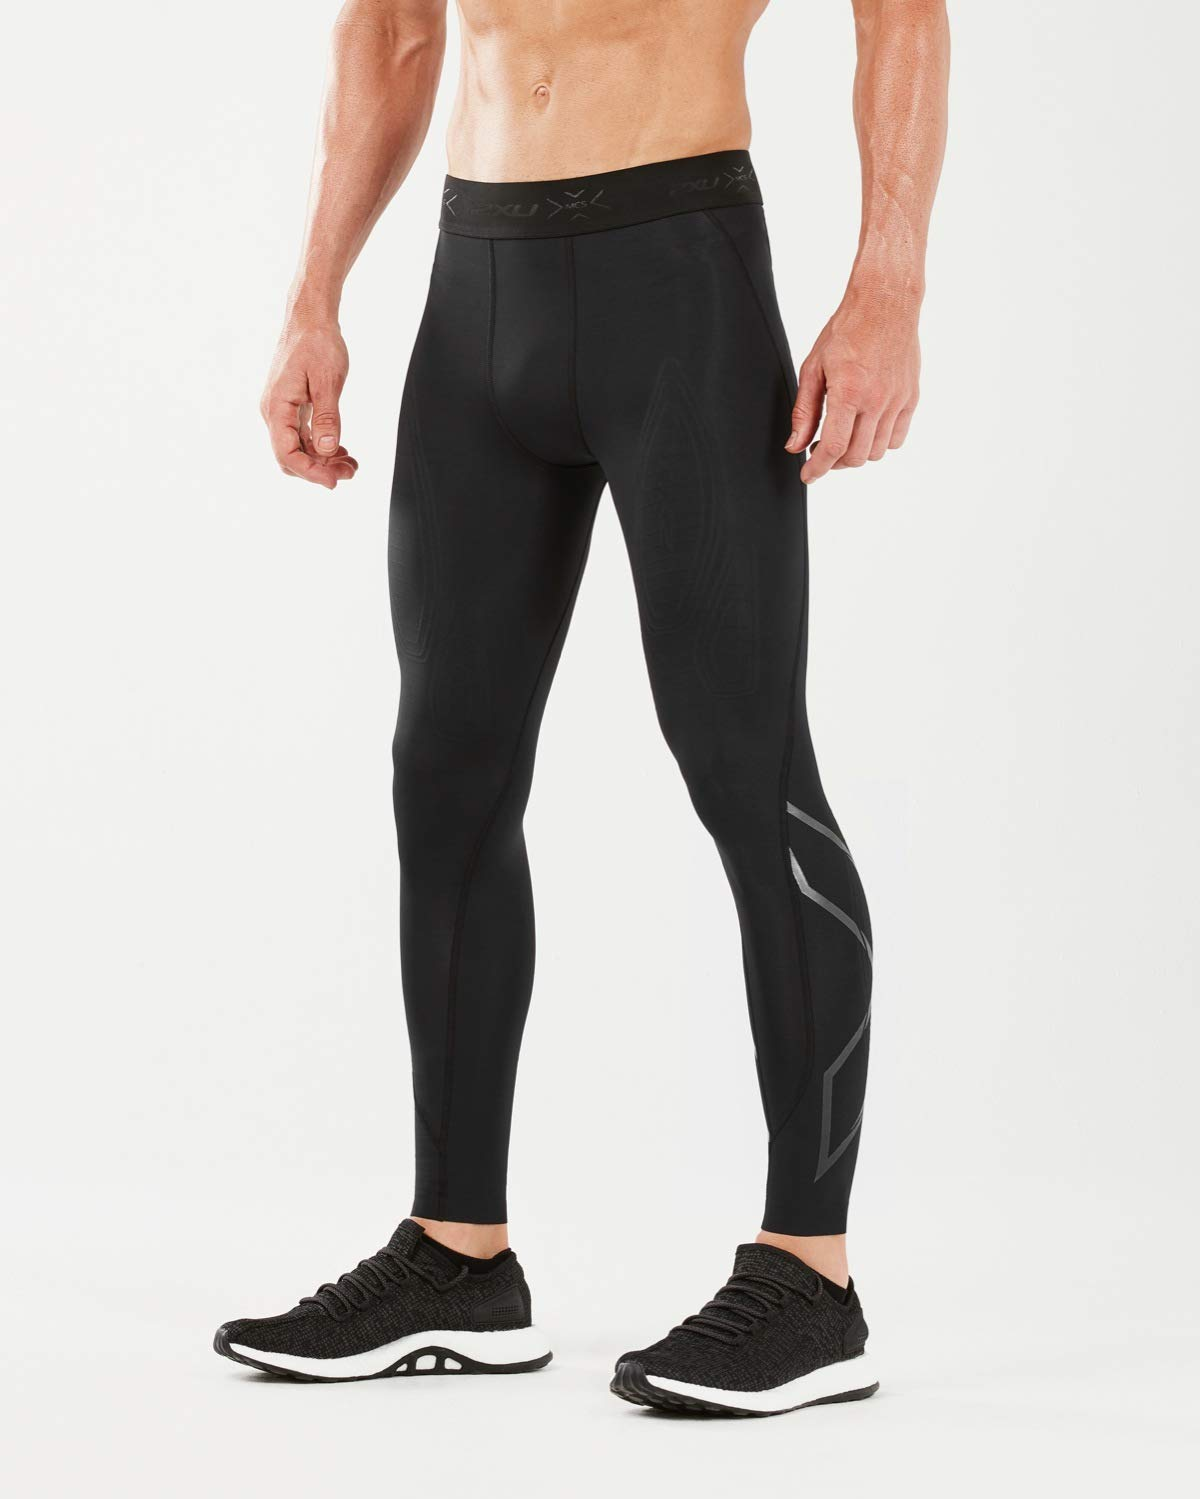 2XU MCS x Training Comp Tights, Black/Nero, Medium by 2XU (Image #1)